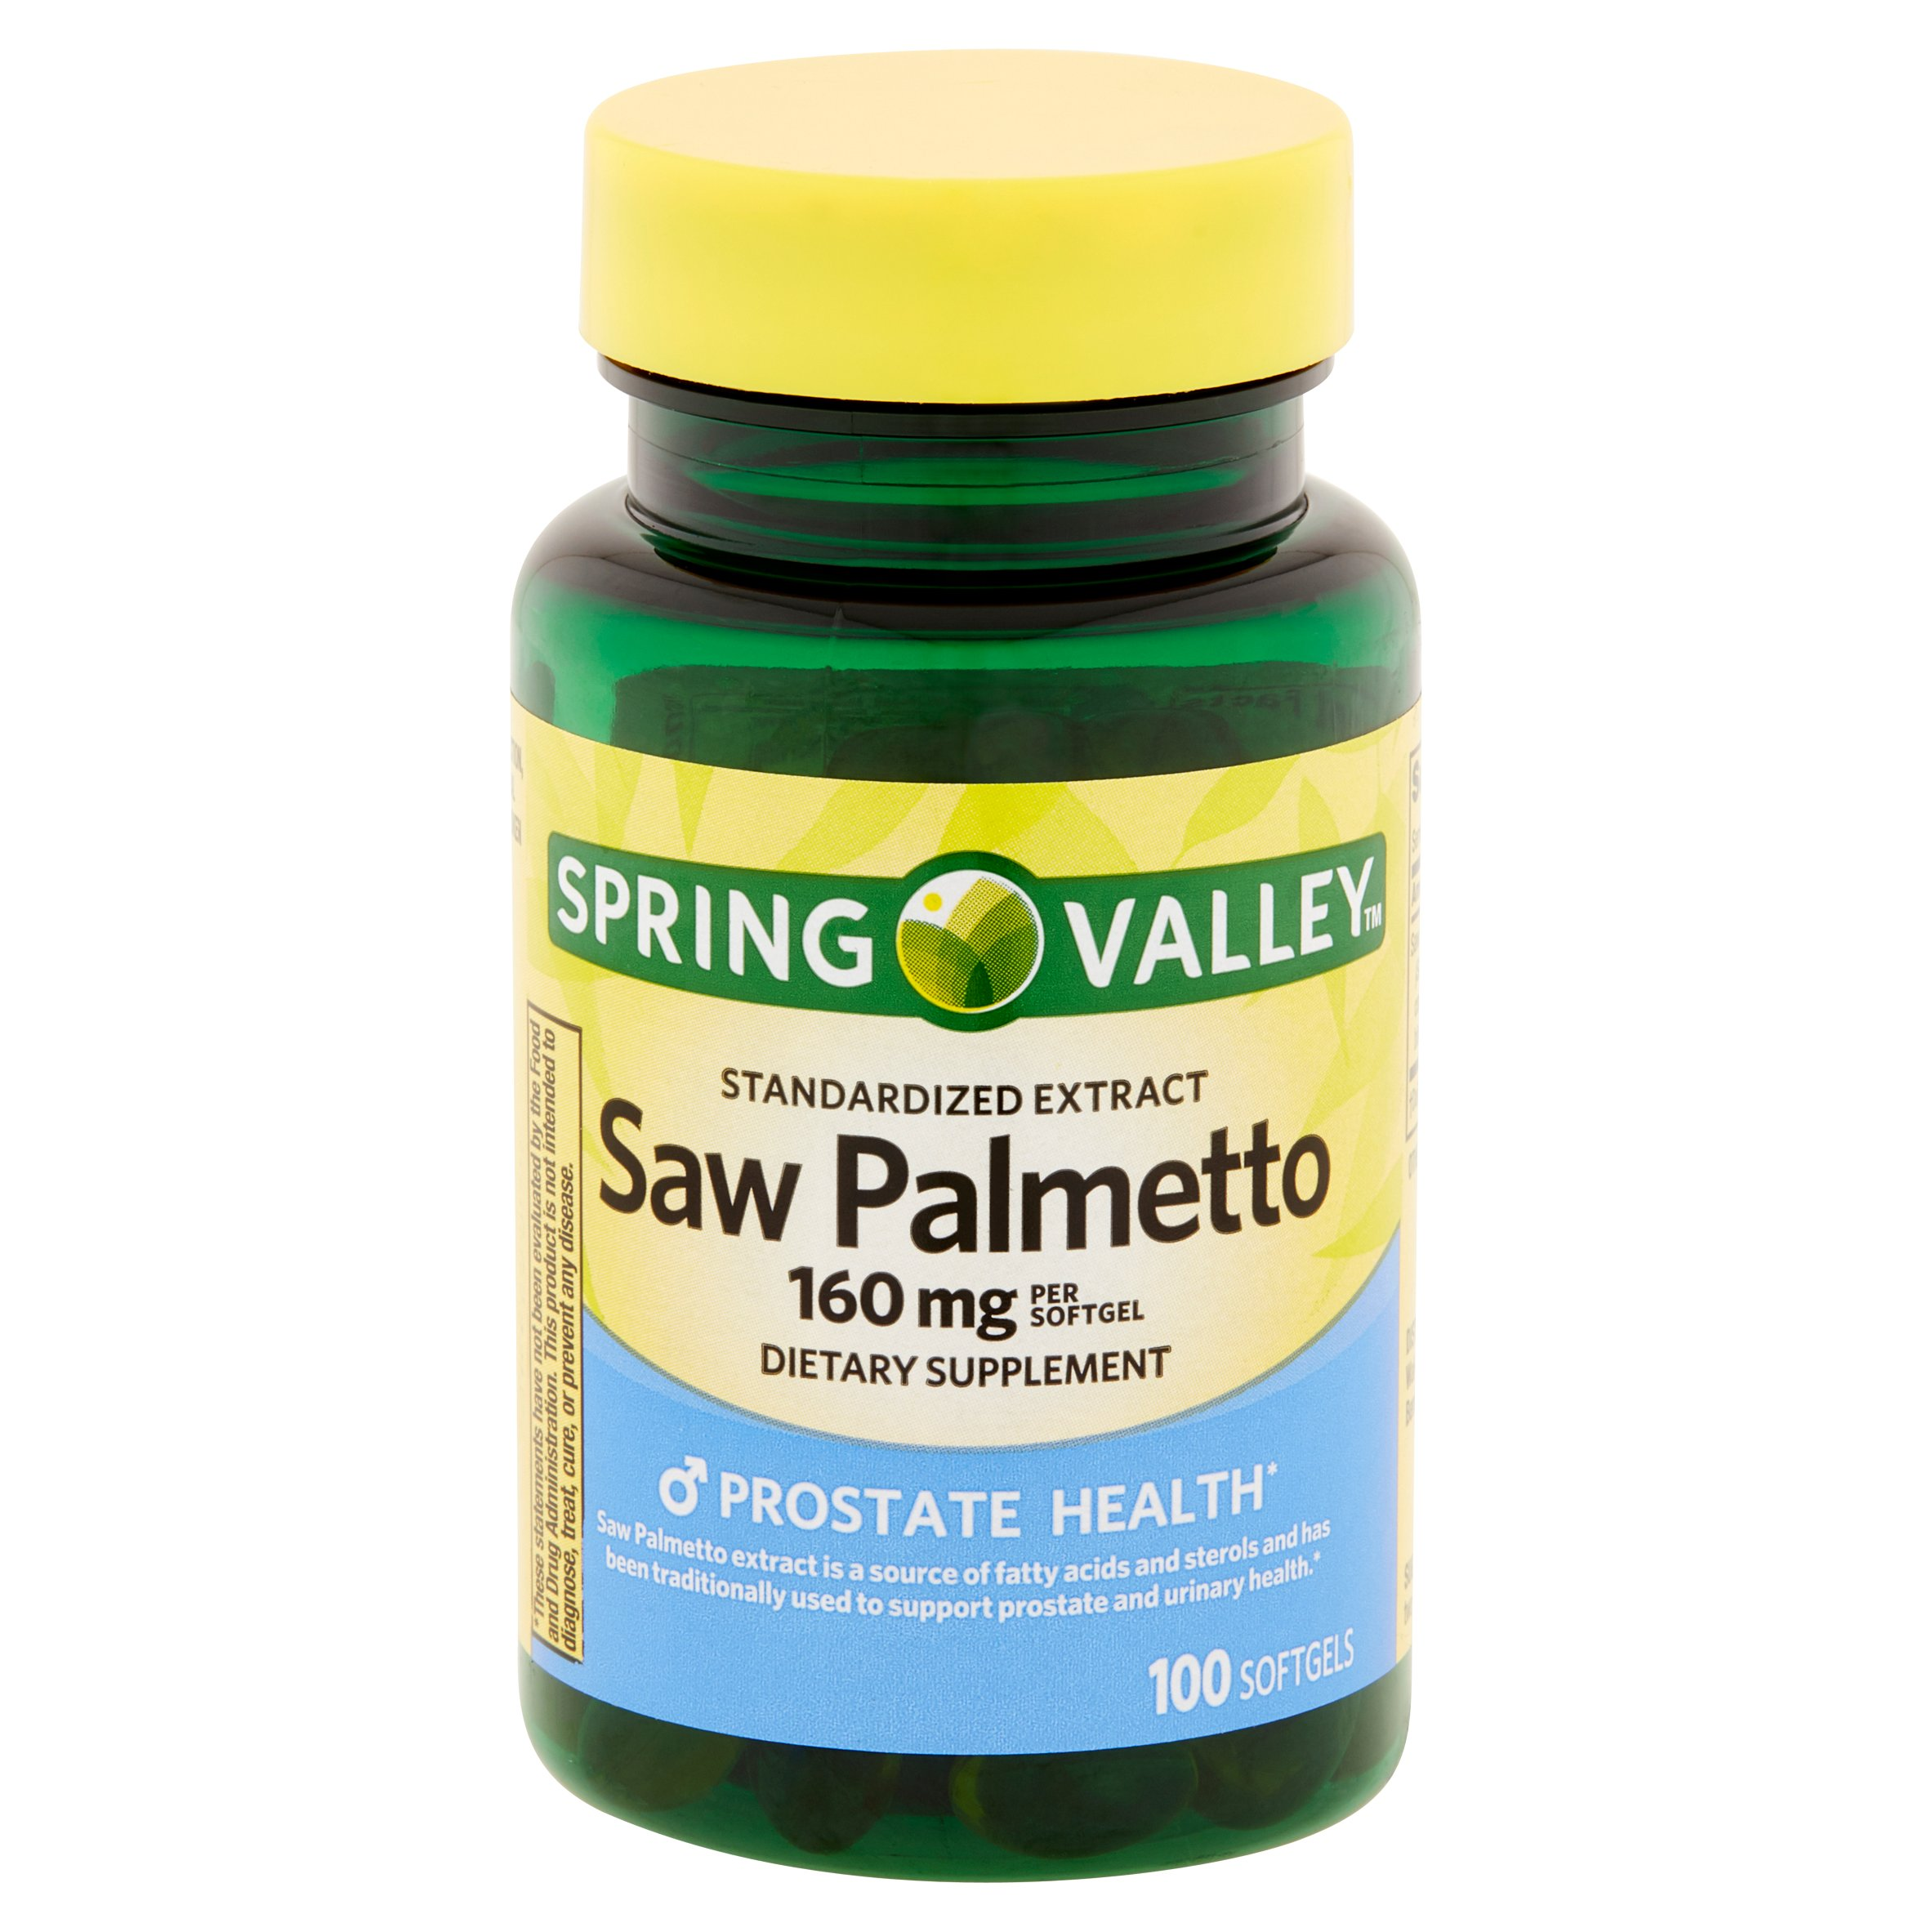 Spring Valley Saw Palmetto Extract Softgels 160 mg 100 Ct